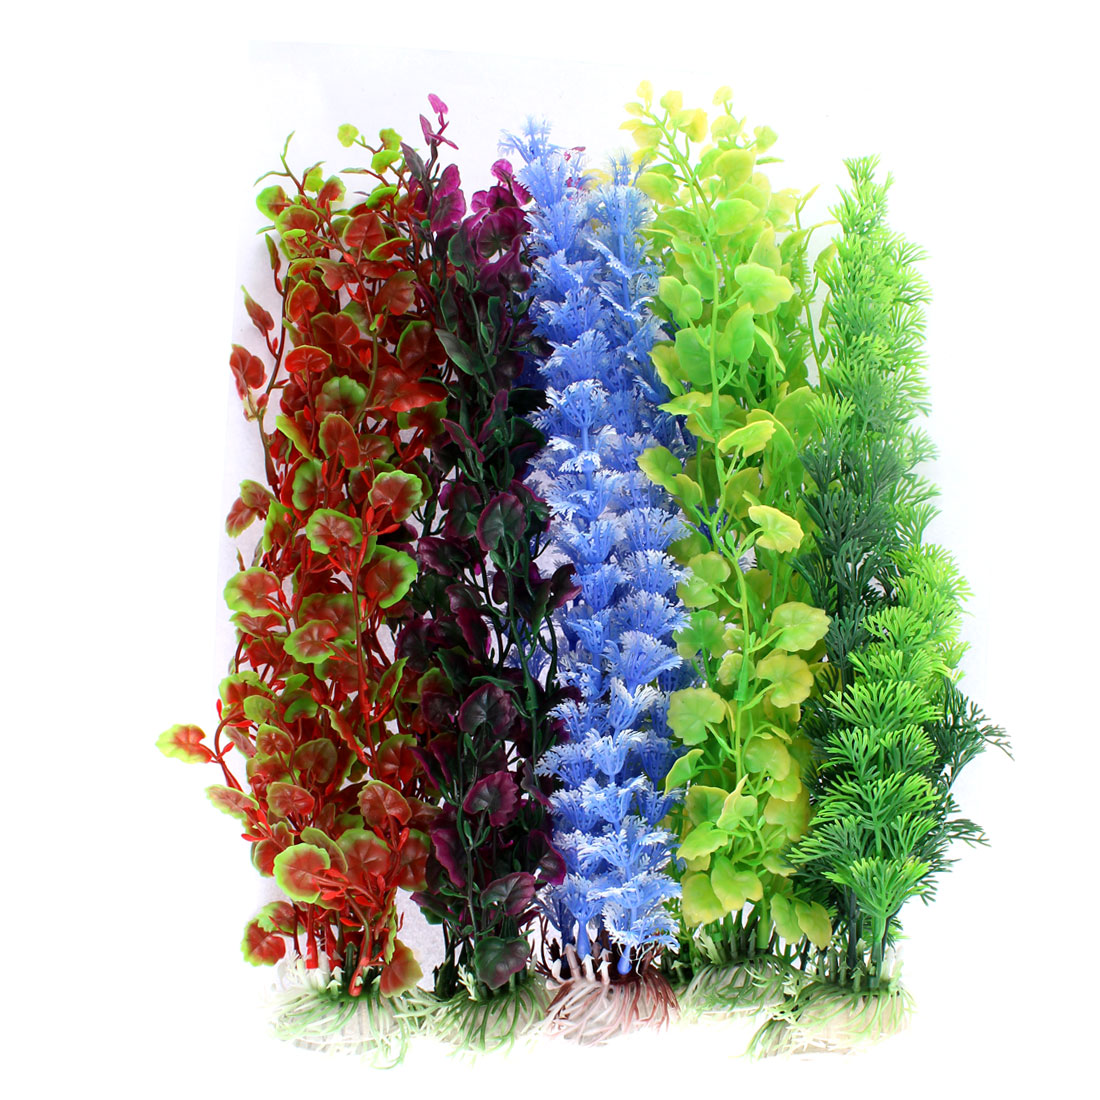 Aquarium Plastic Emulational Underwater Grass Plant Decor 10 in 1